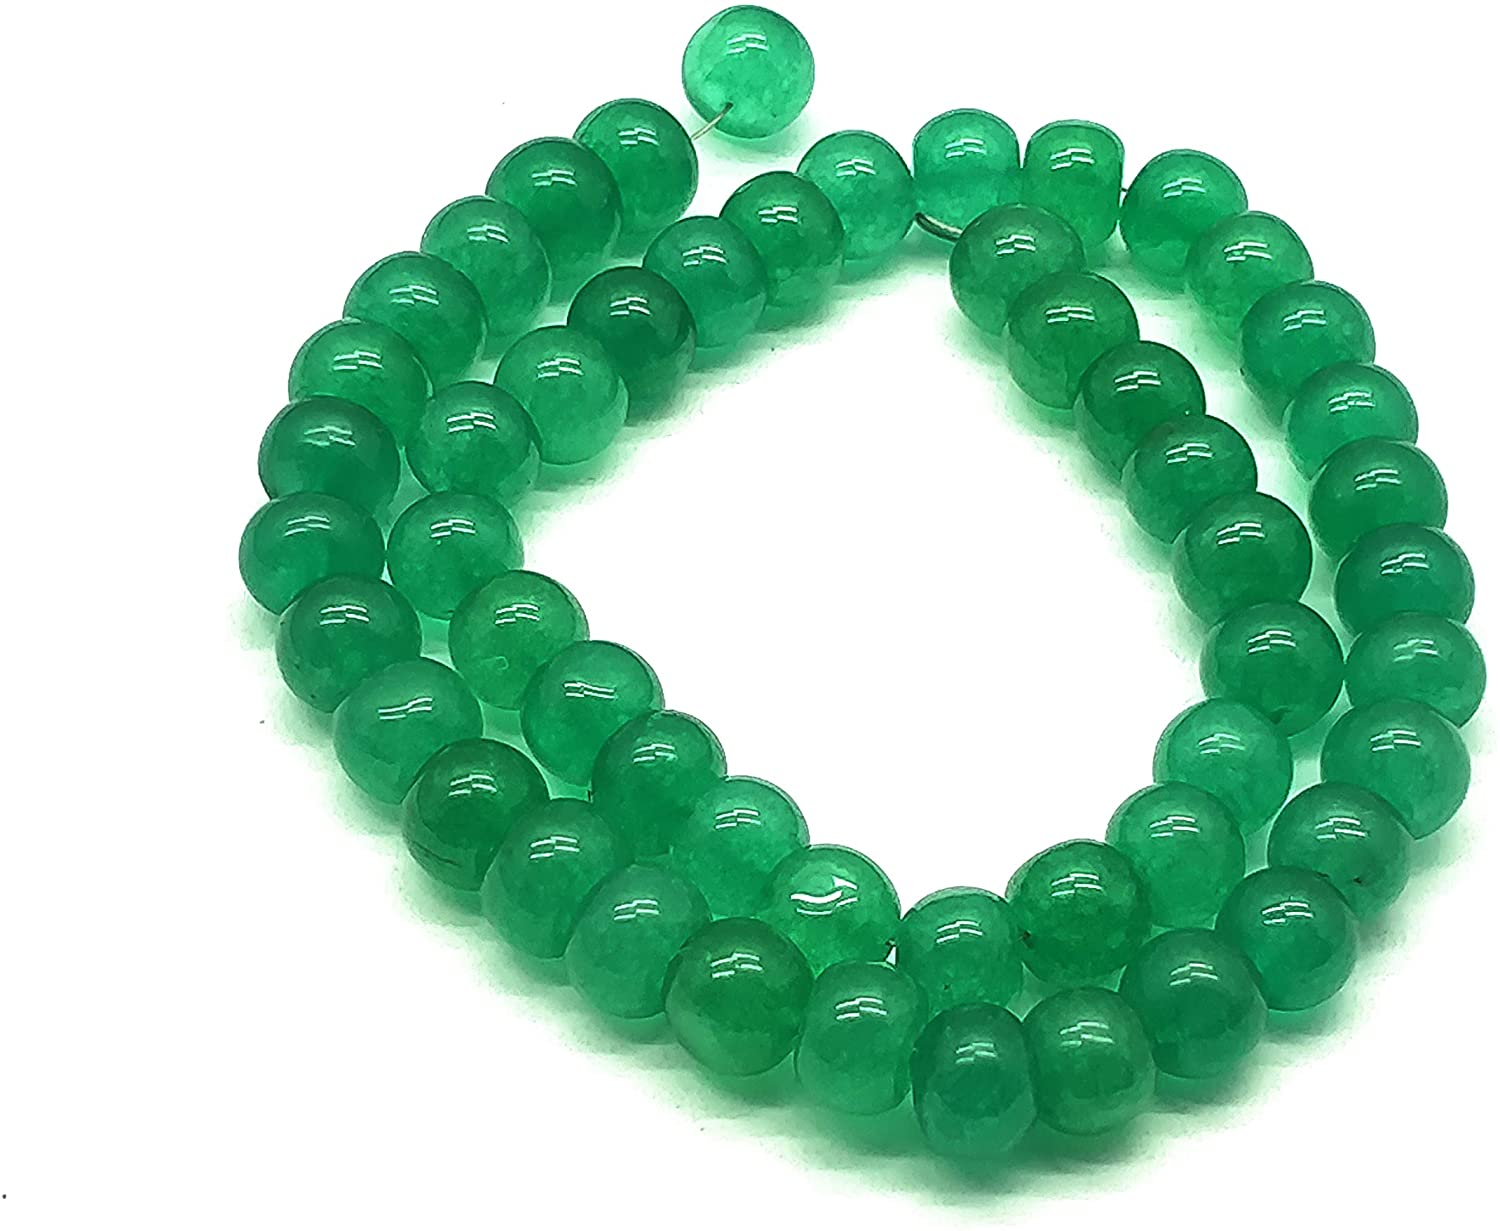 1 Strand Natural Green Onyx Size 8mm Beads Shape Rondelle Cut Smooth Length 13.5 Inch code-PC476